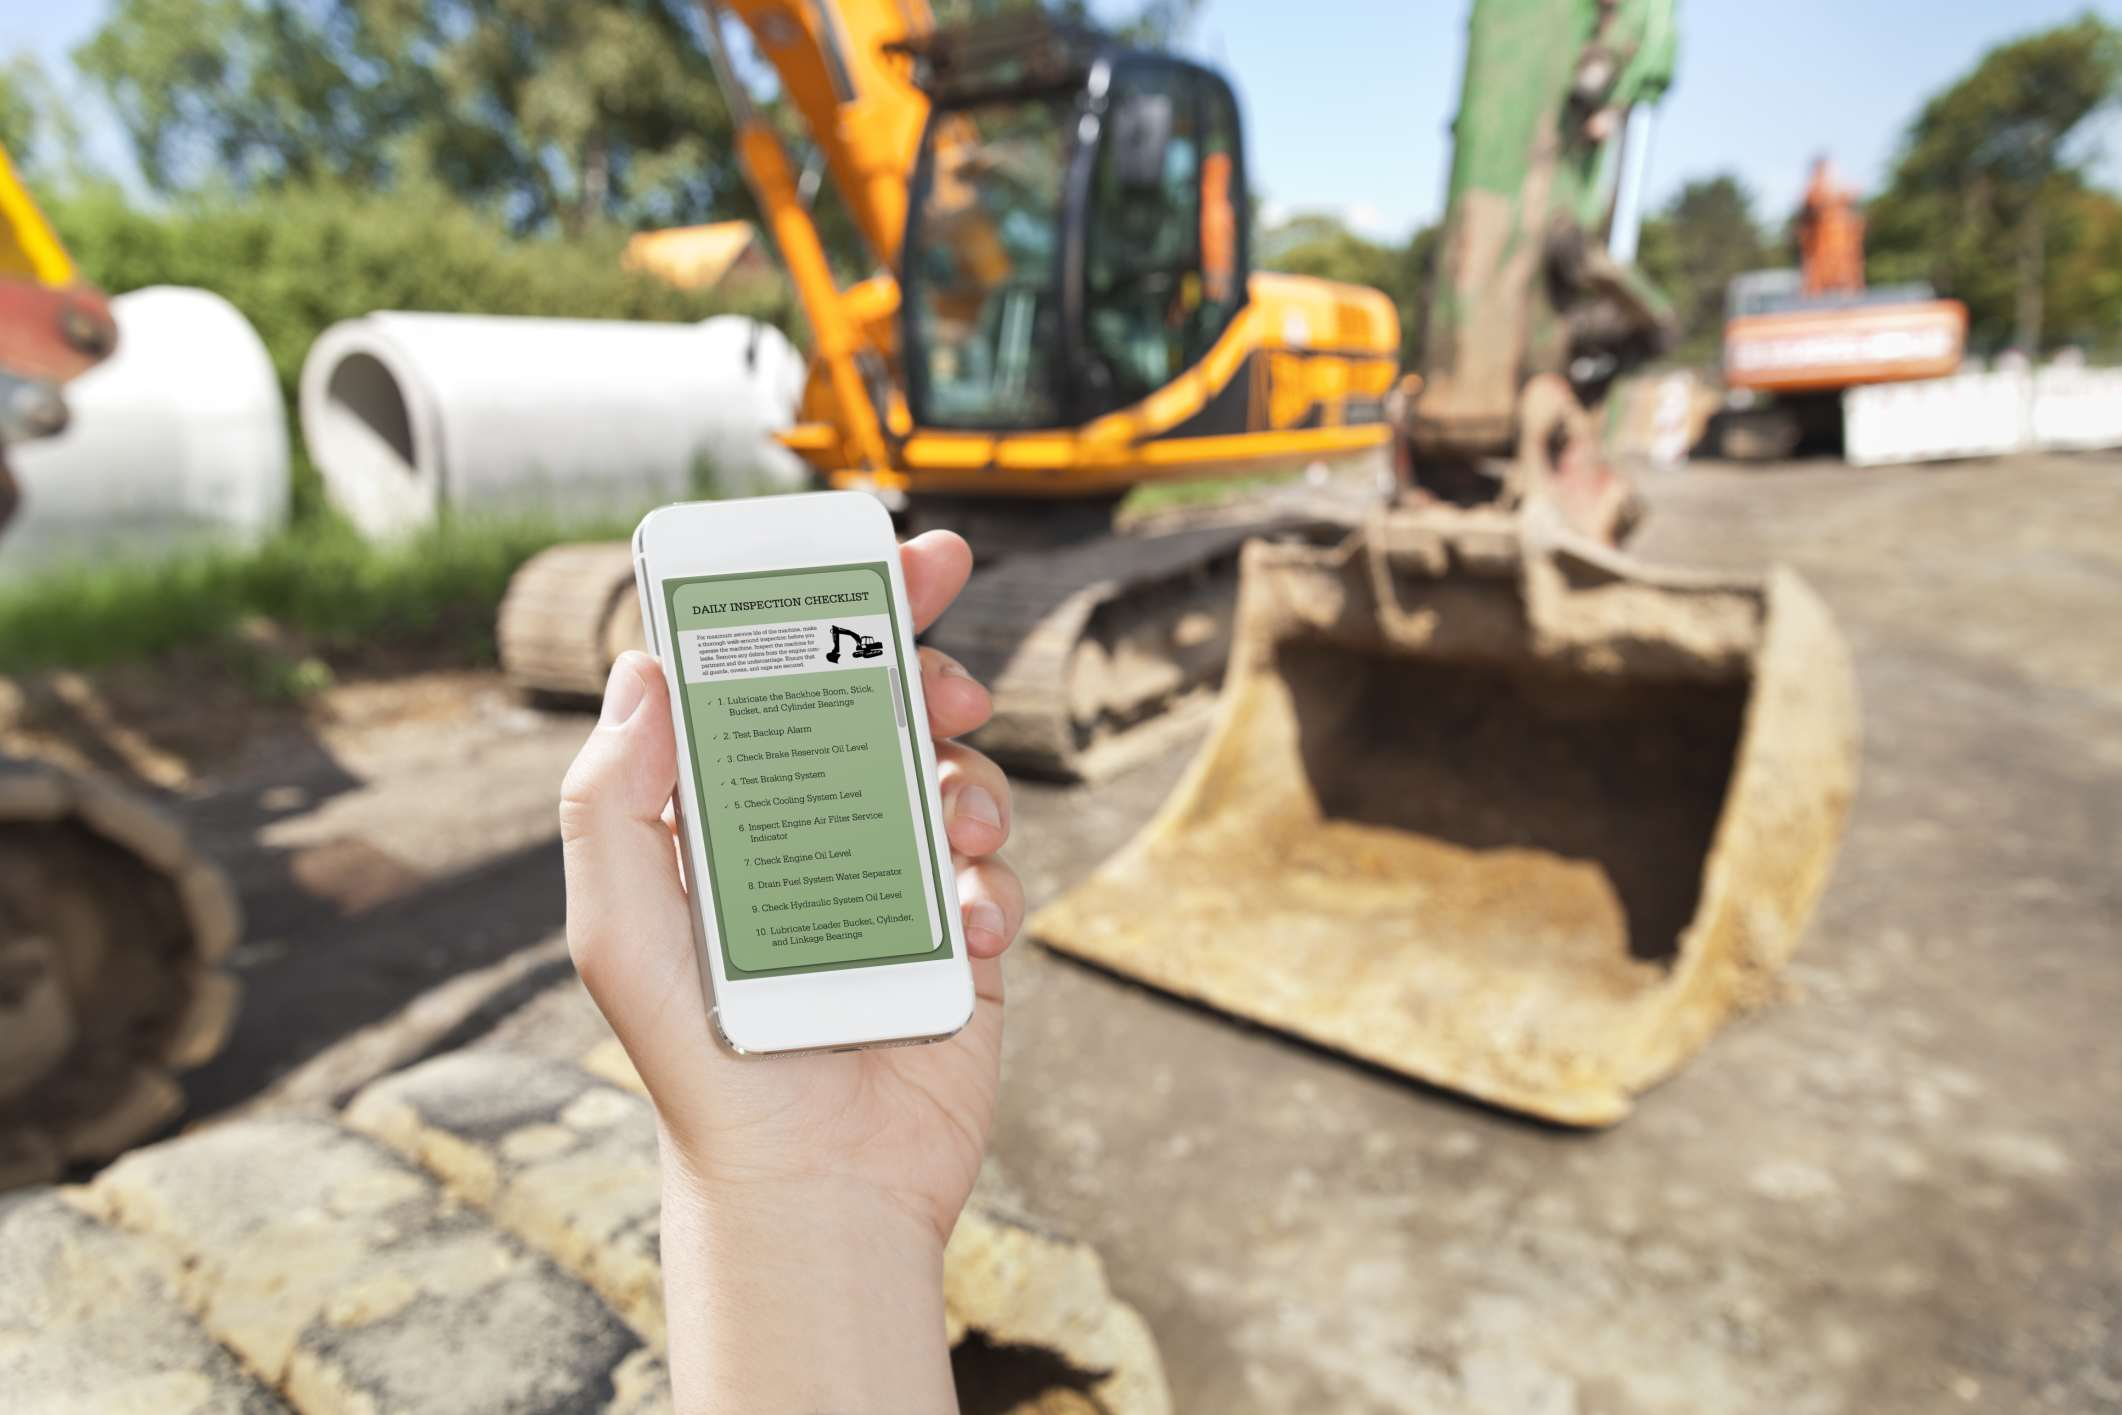 Construction software on a smartphone may help some small businesses.